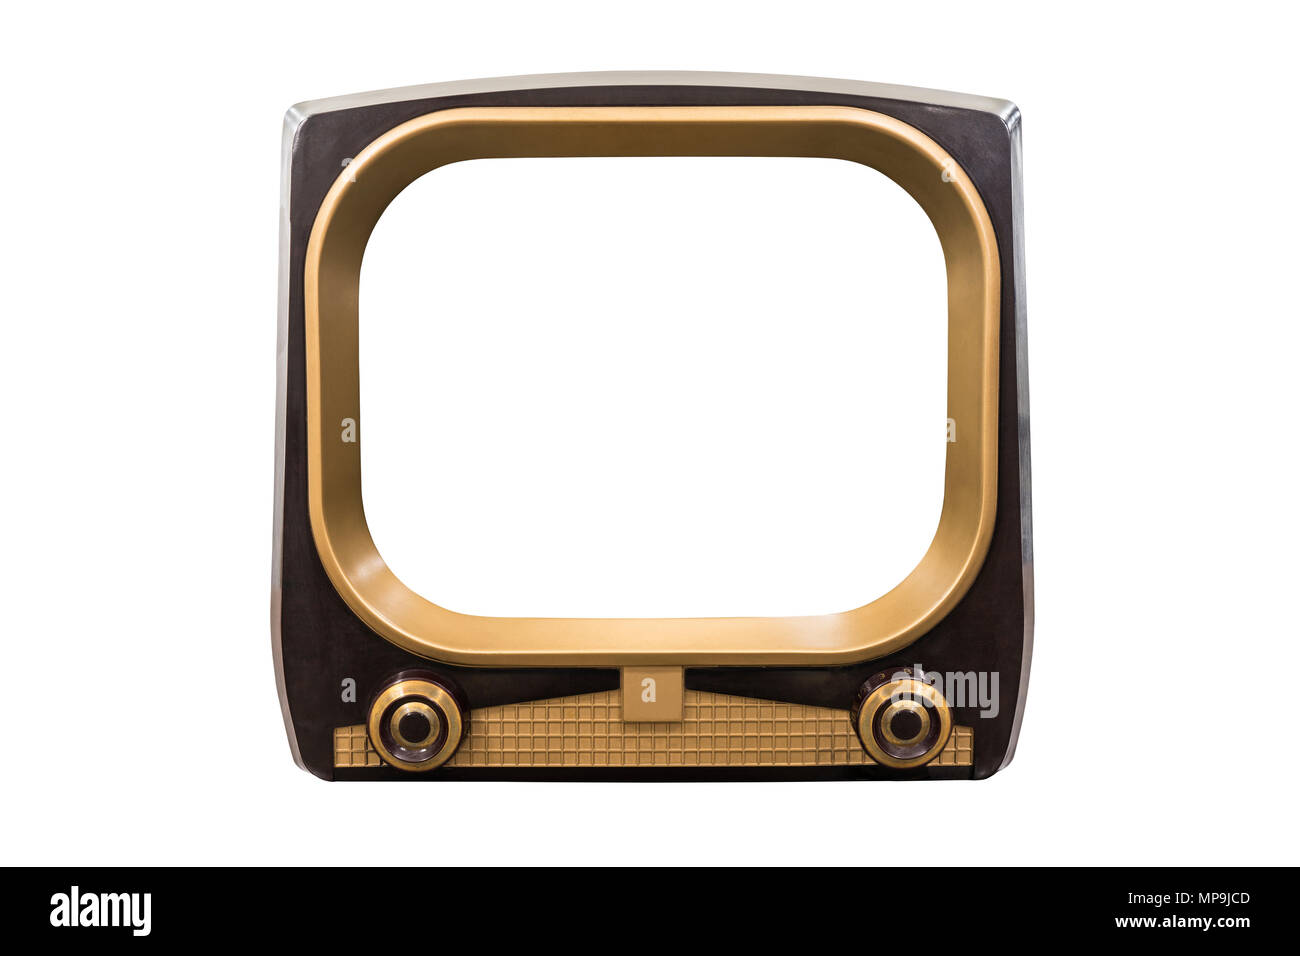 Retro 1950s television isolated on white with cut out screen. - Stock Image